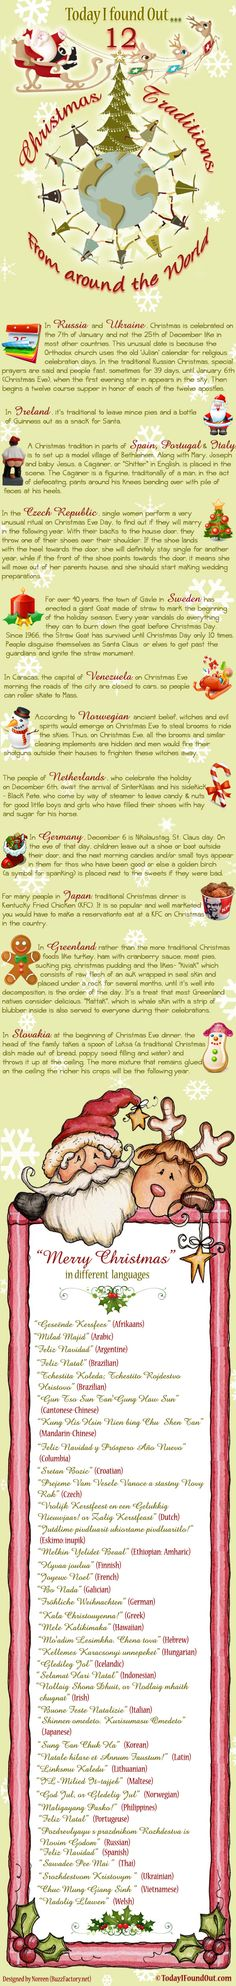 Christmas Traditions from around the world. Pretty neat!